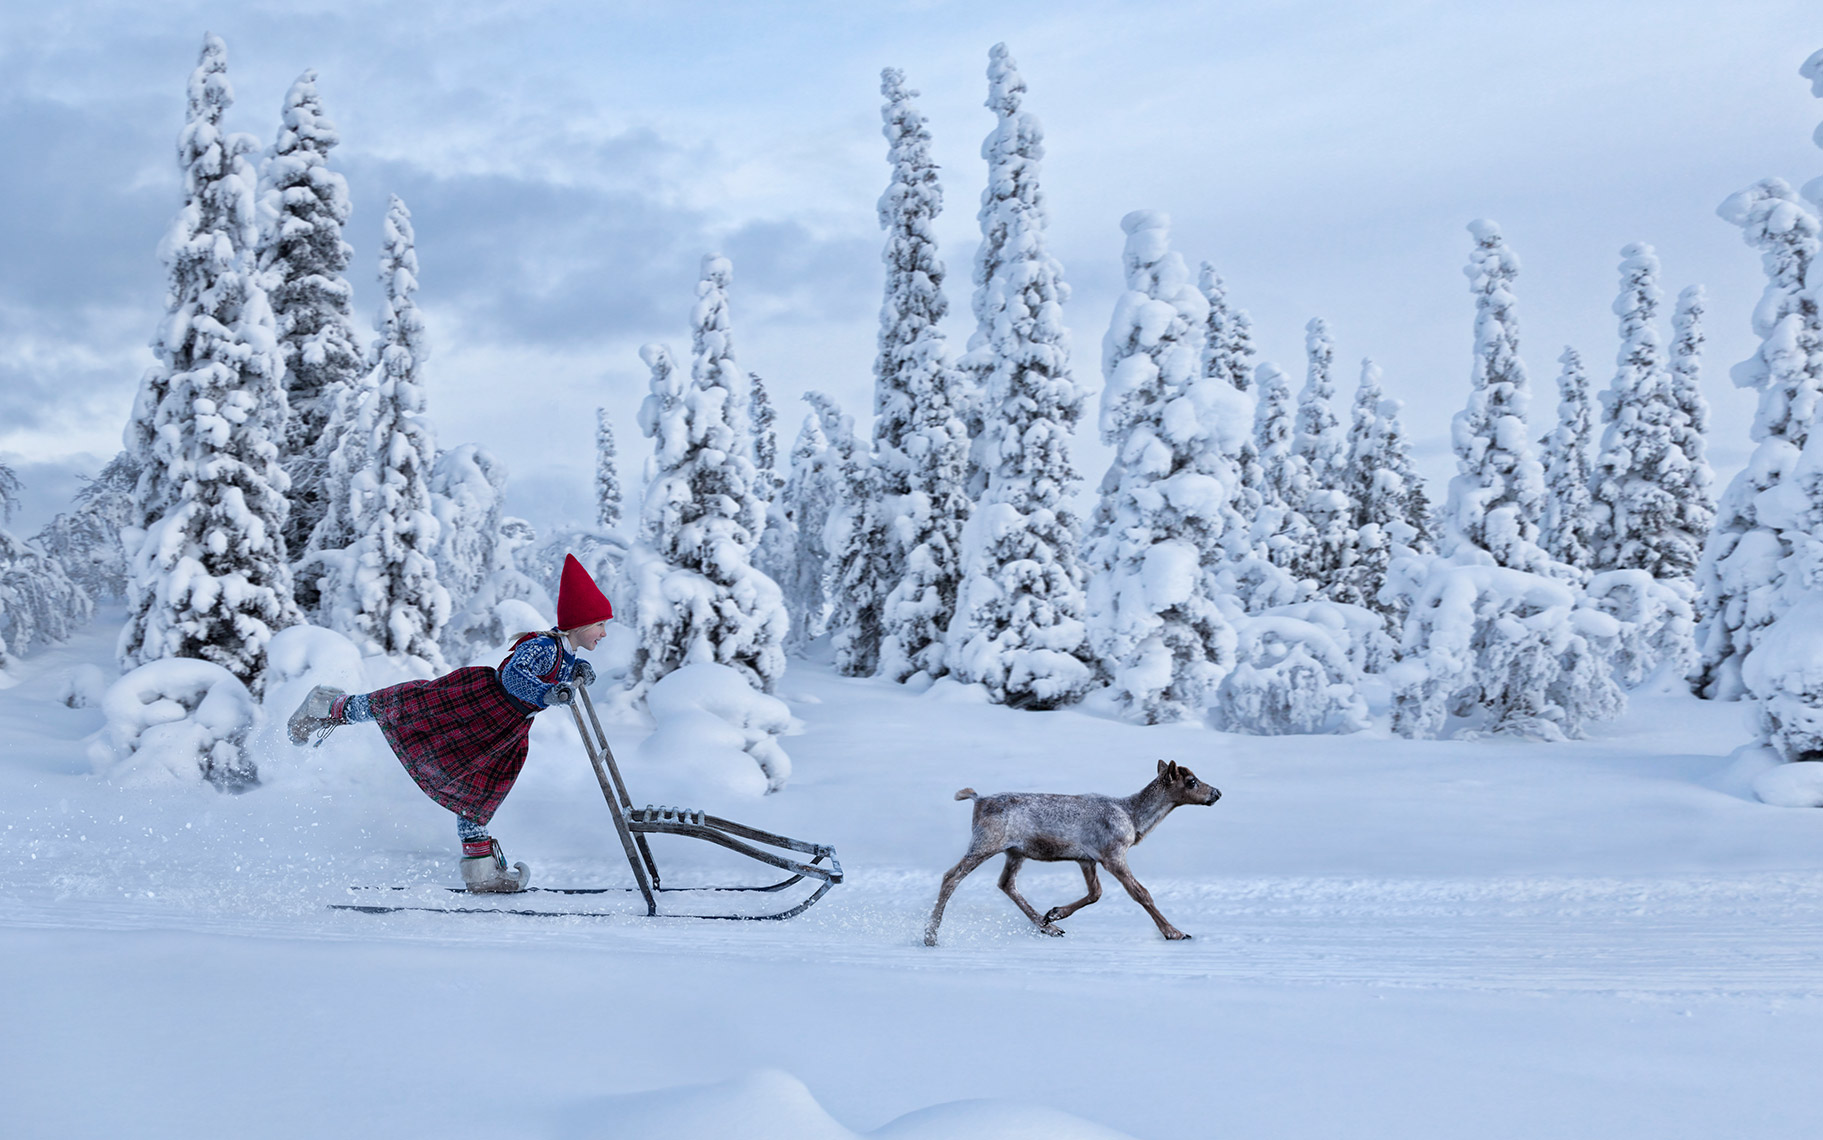 ANJA-AND-REINDEER-WITH-KICKSLED_THE-REINDEER-WISH